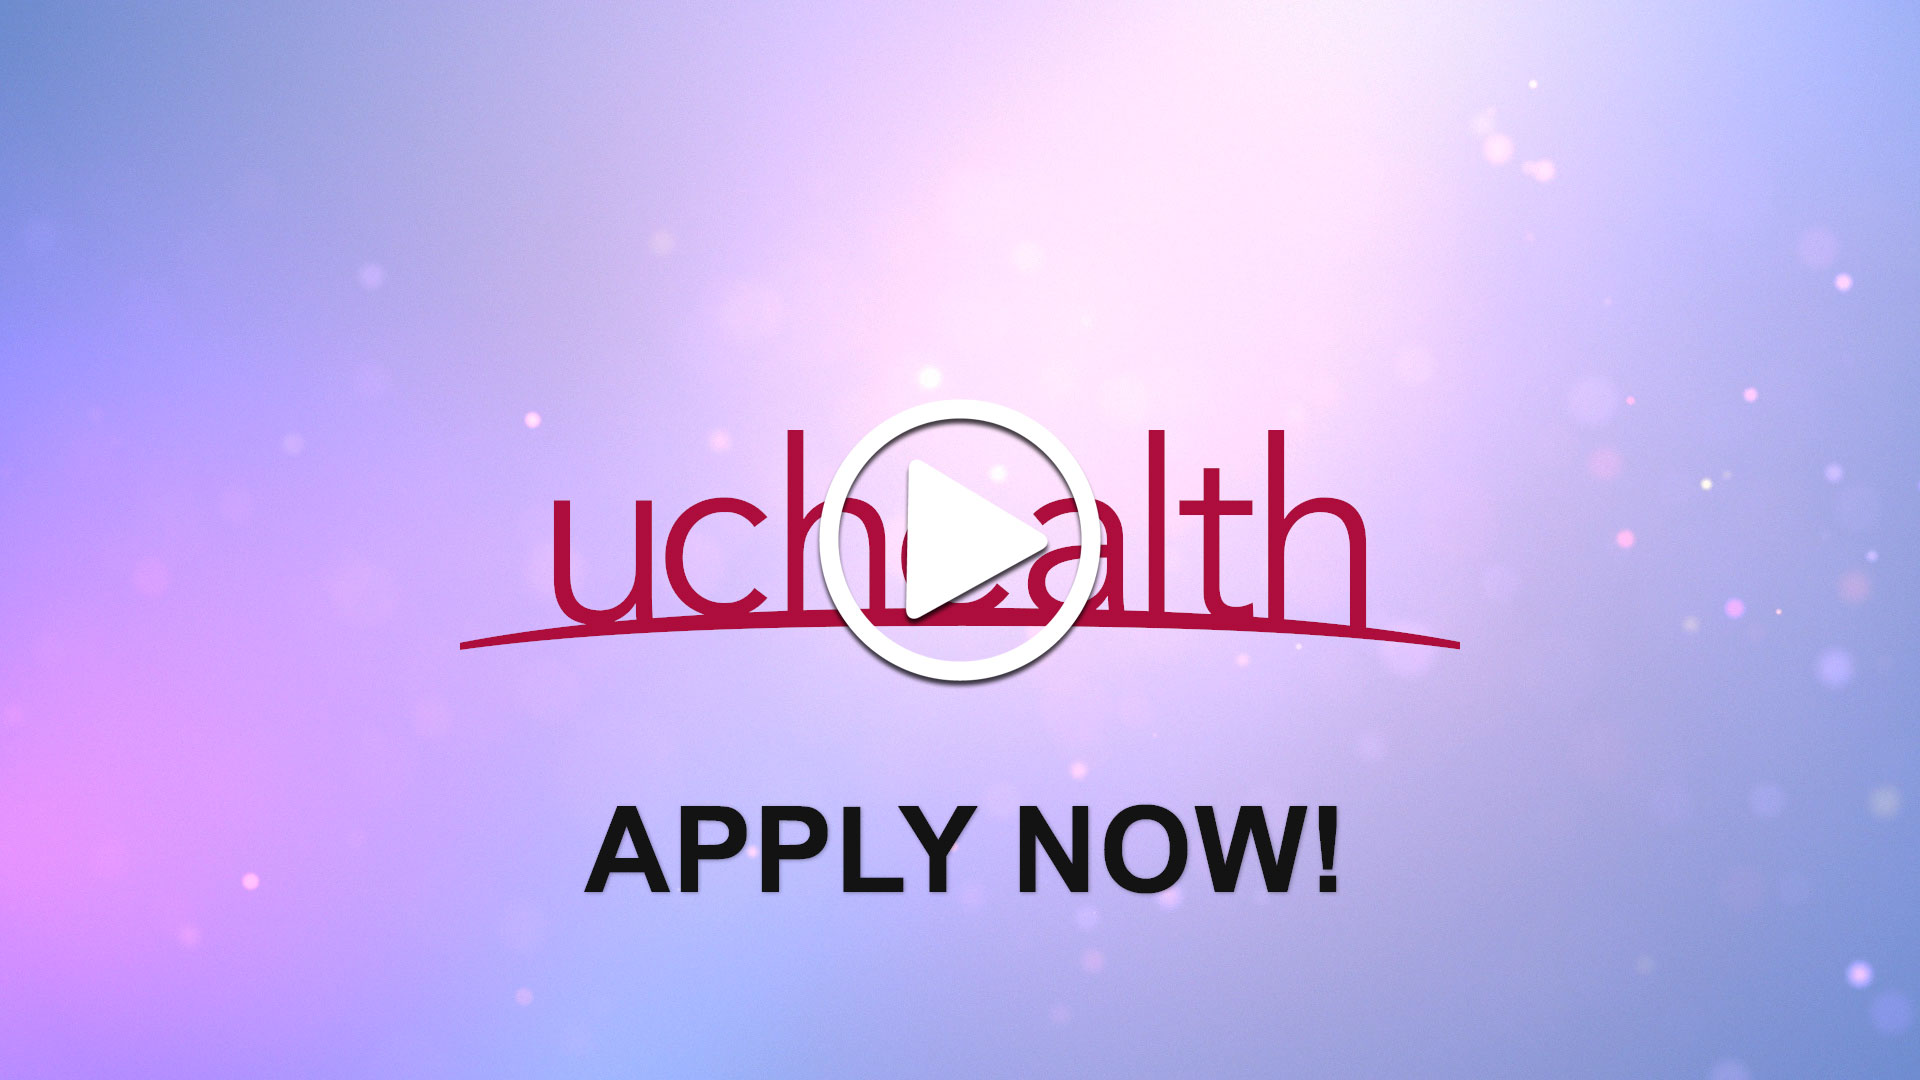 Watch our careers video for available job opening Palliative Medicine - Physician - Fort Collins, Colorado in Fort Collins, CO, USA